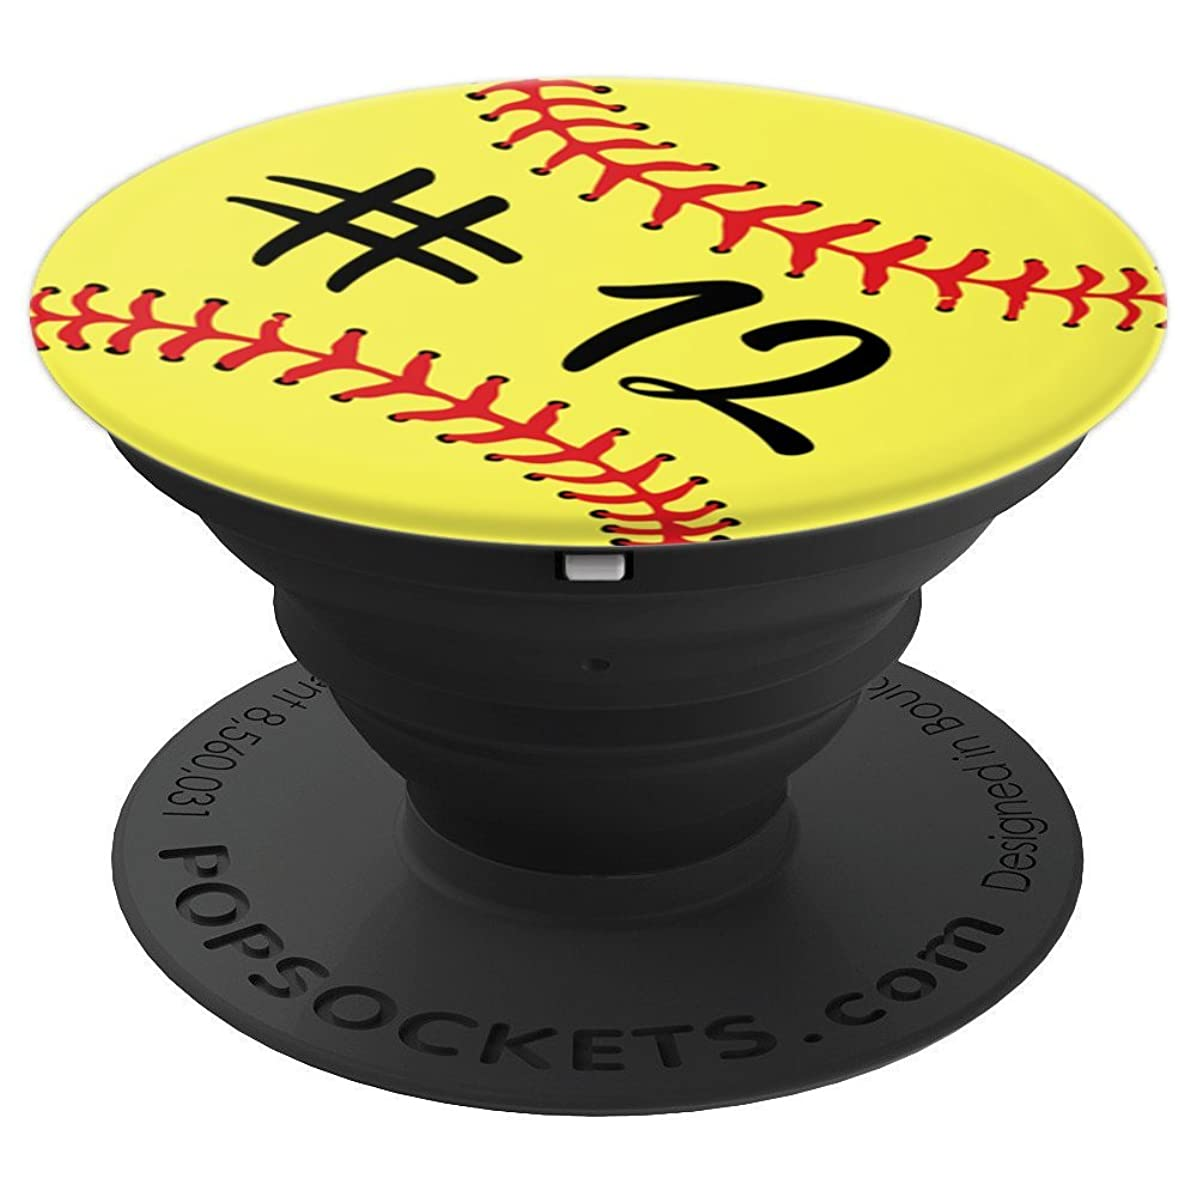 Softball Player #12 Back Jersey No 12 Sports Girl Boy Gift - PopSockets Grip and Stand for Phones and Tablets